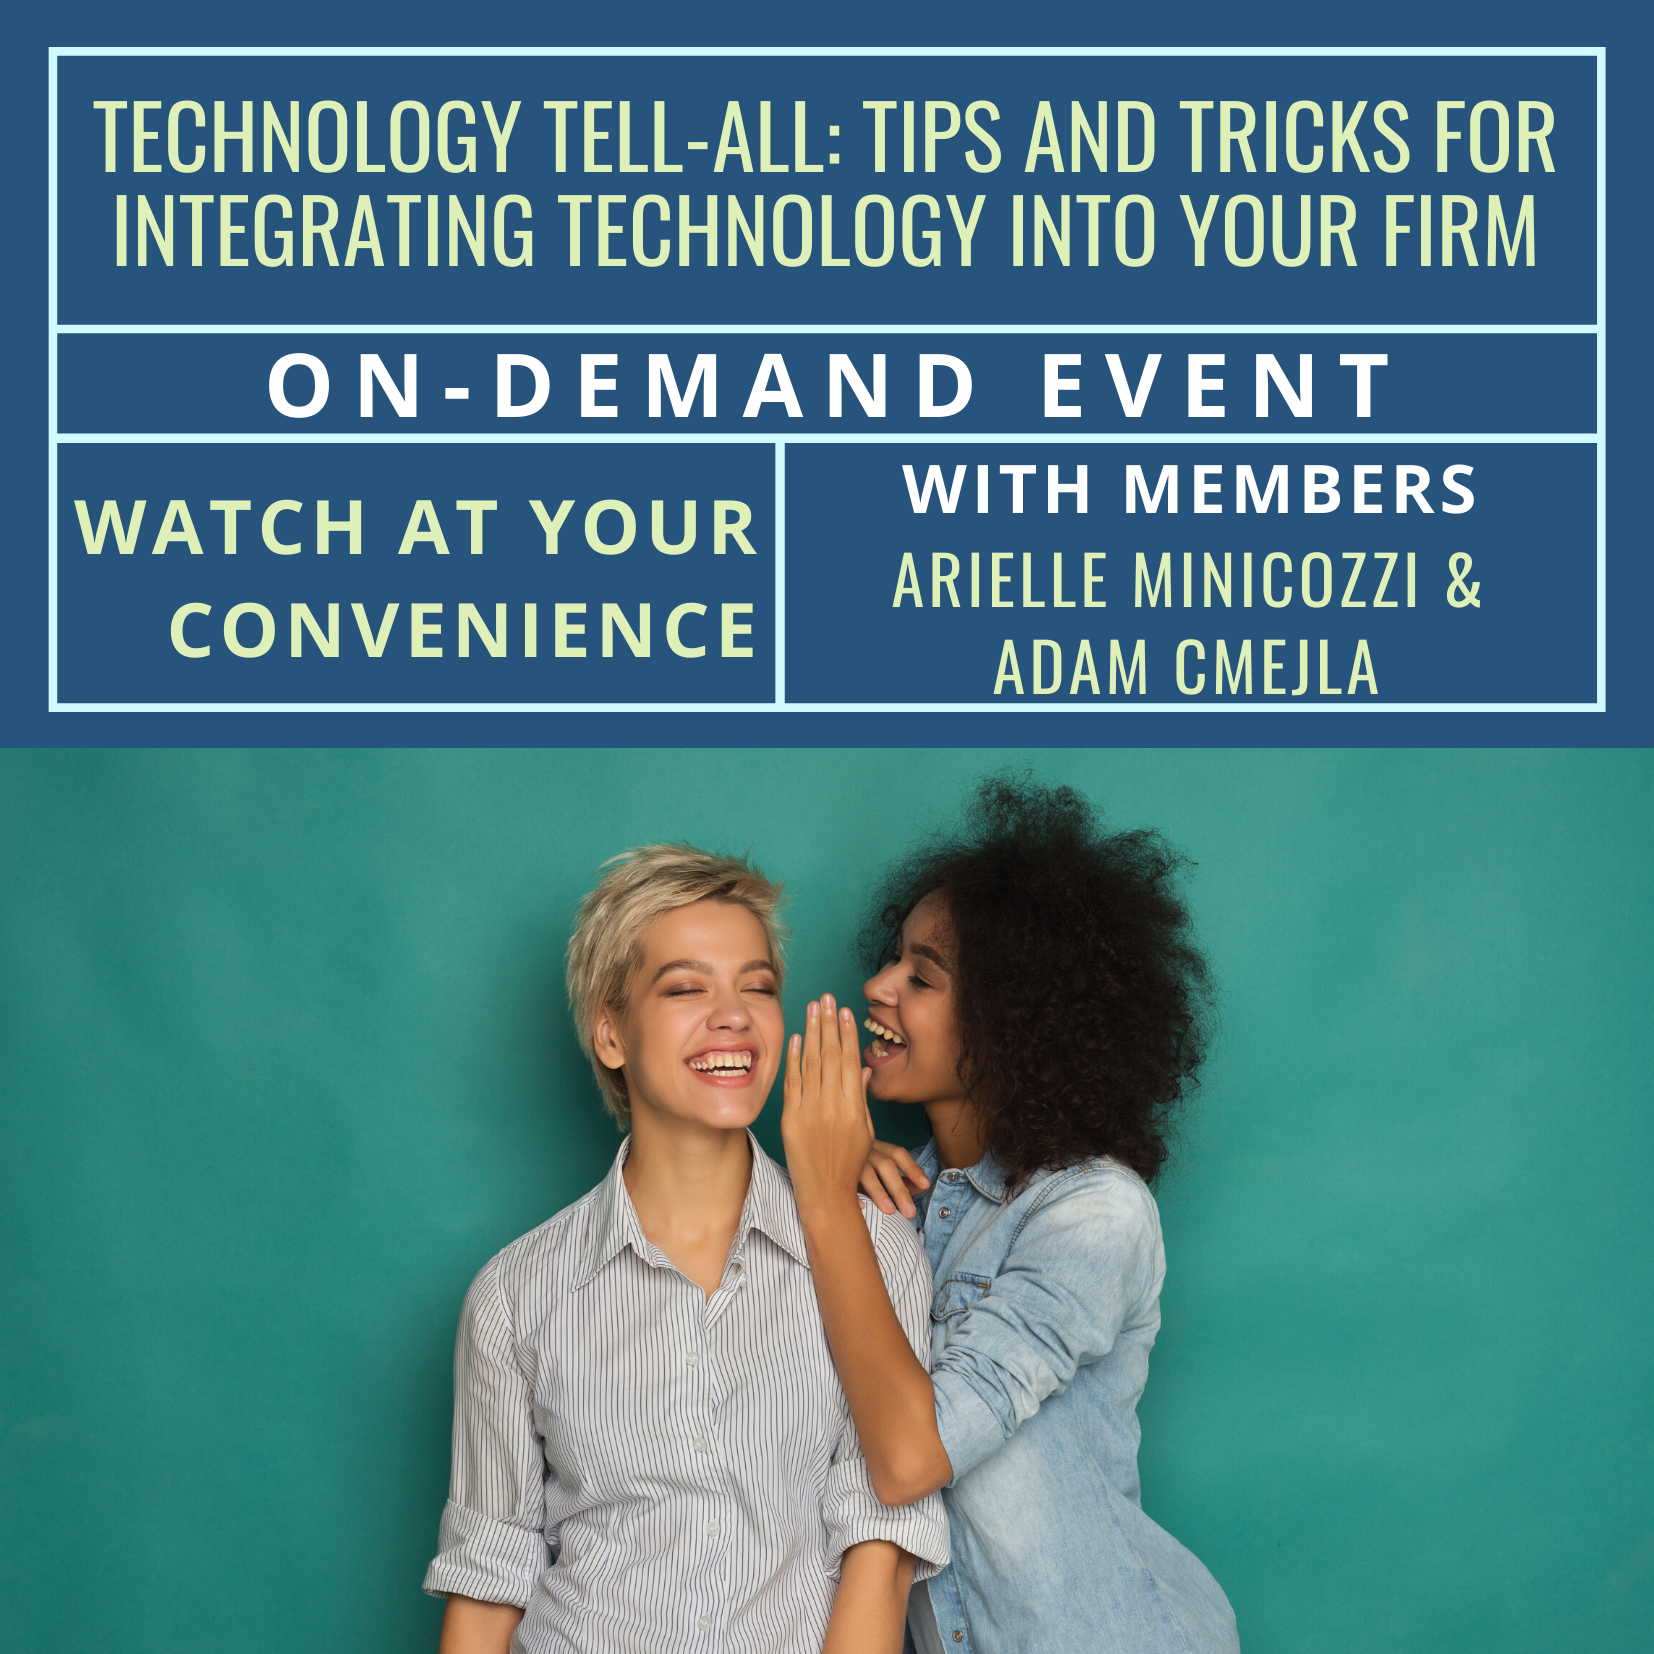 On-Demand Event: Technology Tell-All: Tips and Tricks for Integrating Technology Into Your Firm